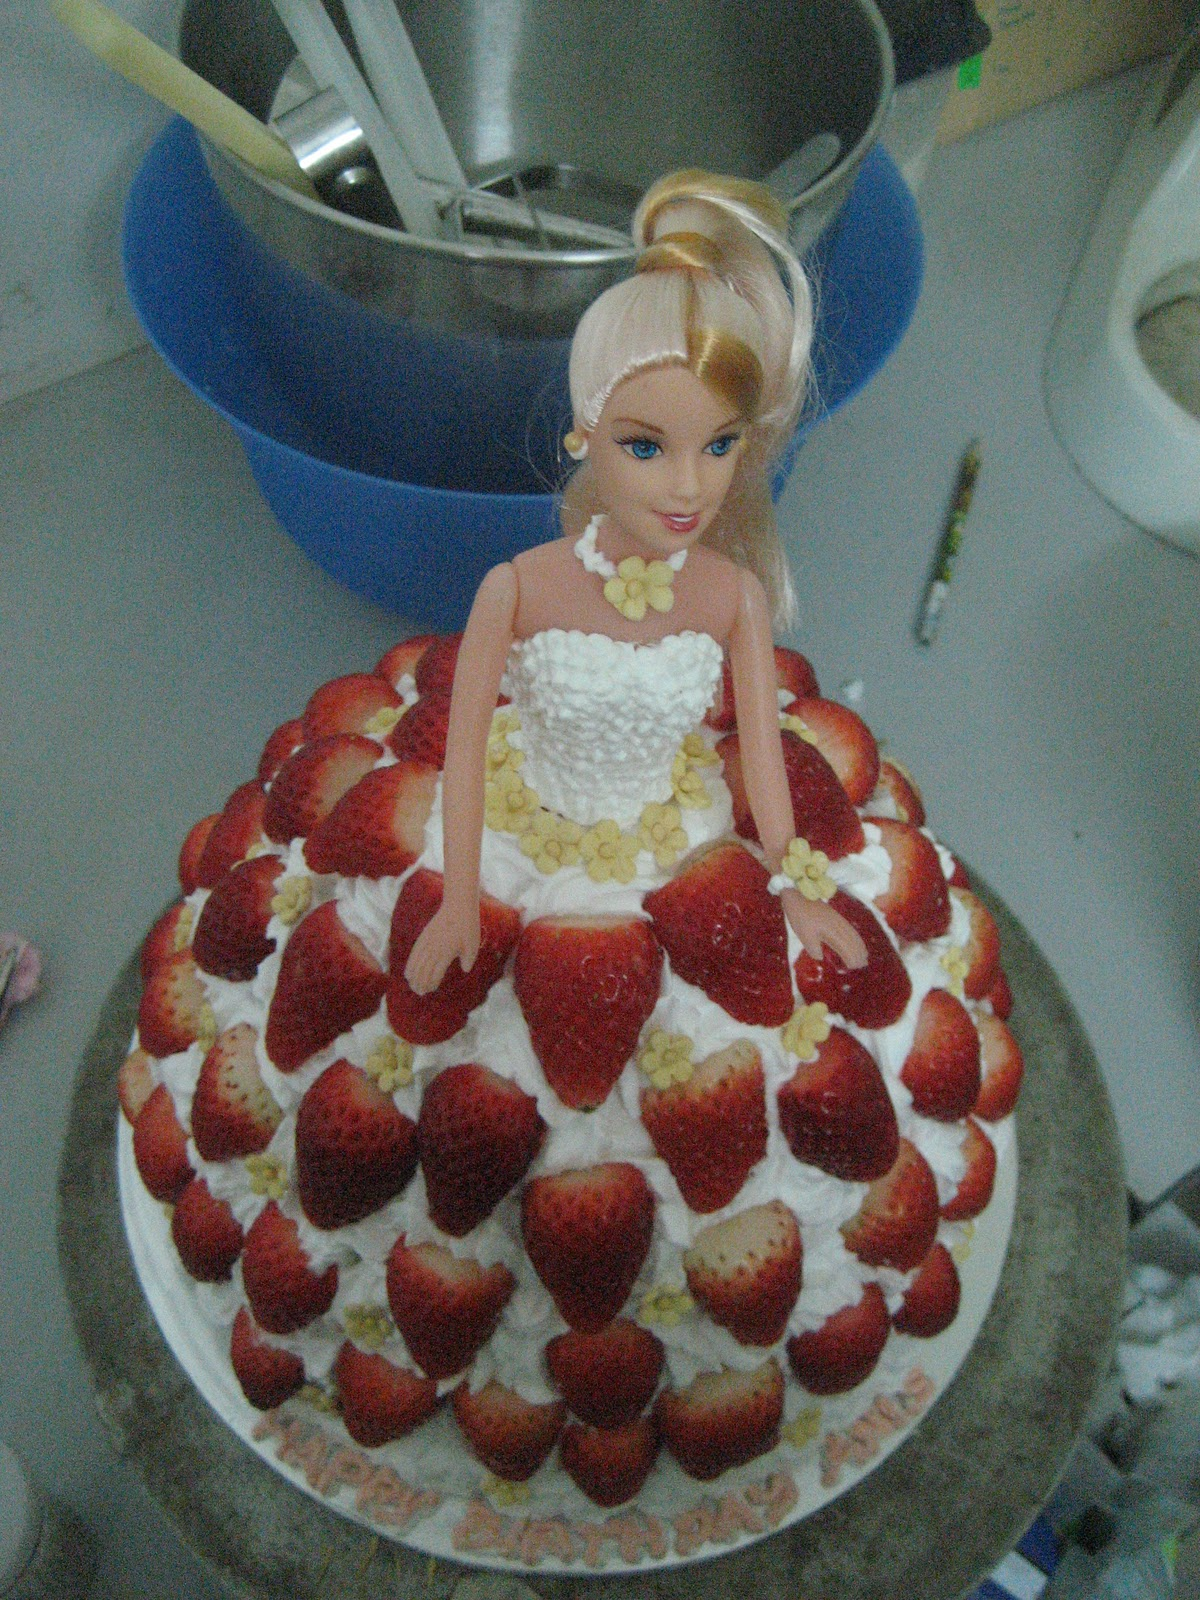 Doll Cake Images With Name : Shugarholic: barbie doll cake & Cheesecake with fresh ...